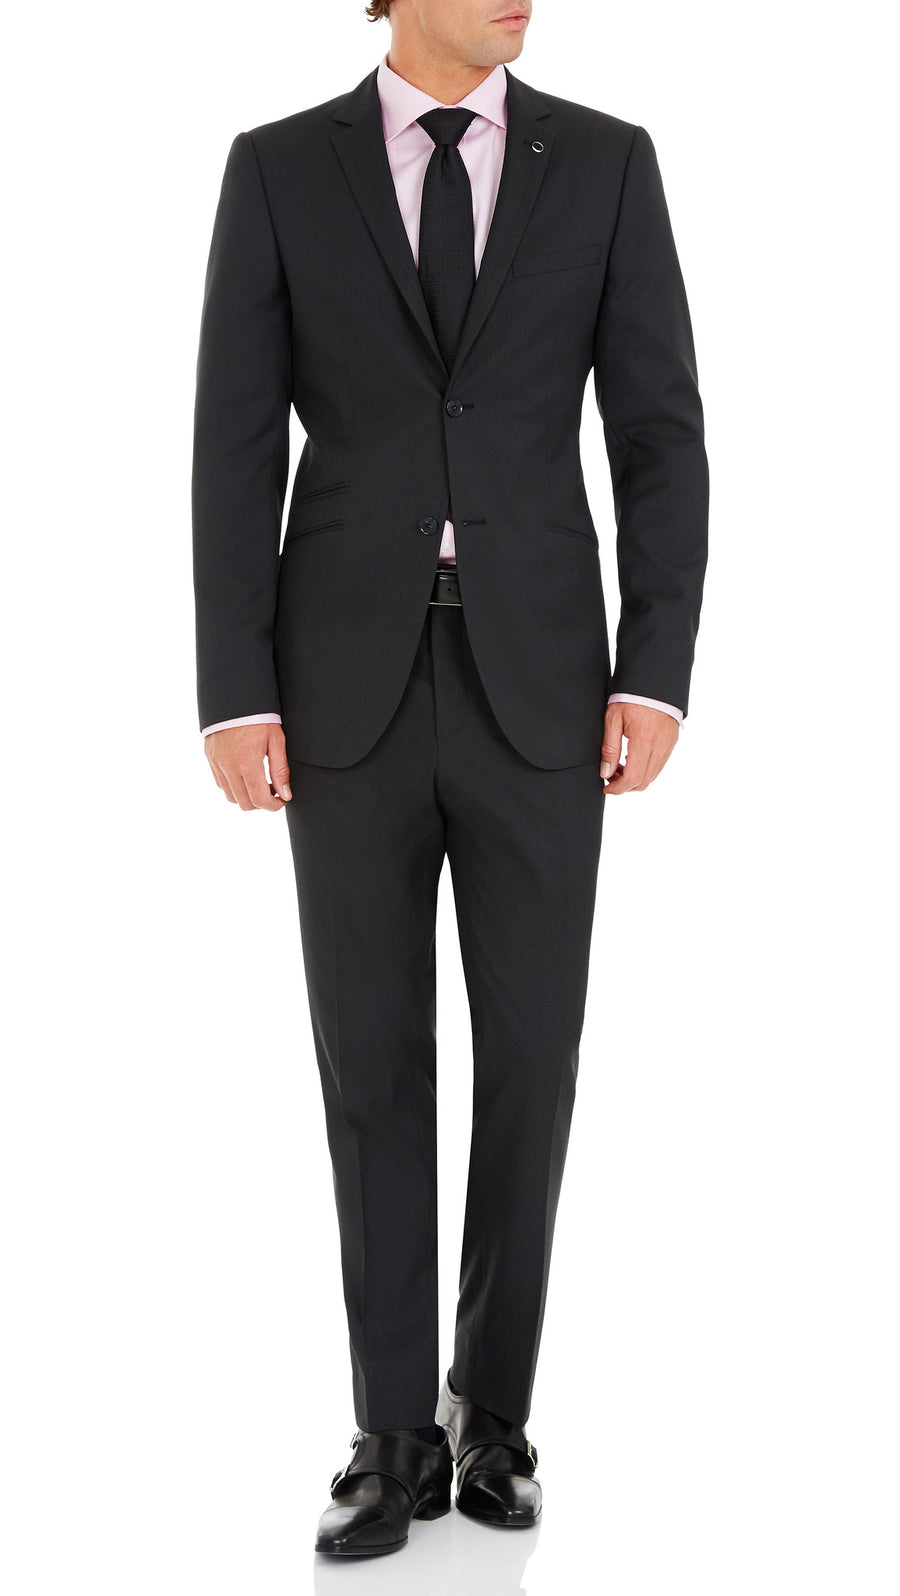 Blackjacket Wool Suit in Dark Grey